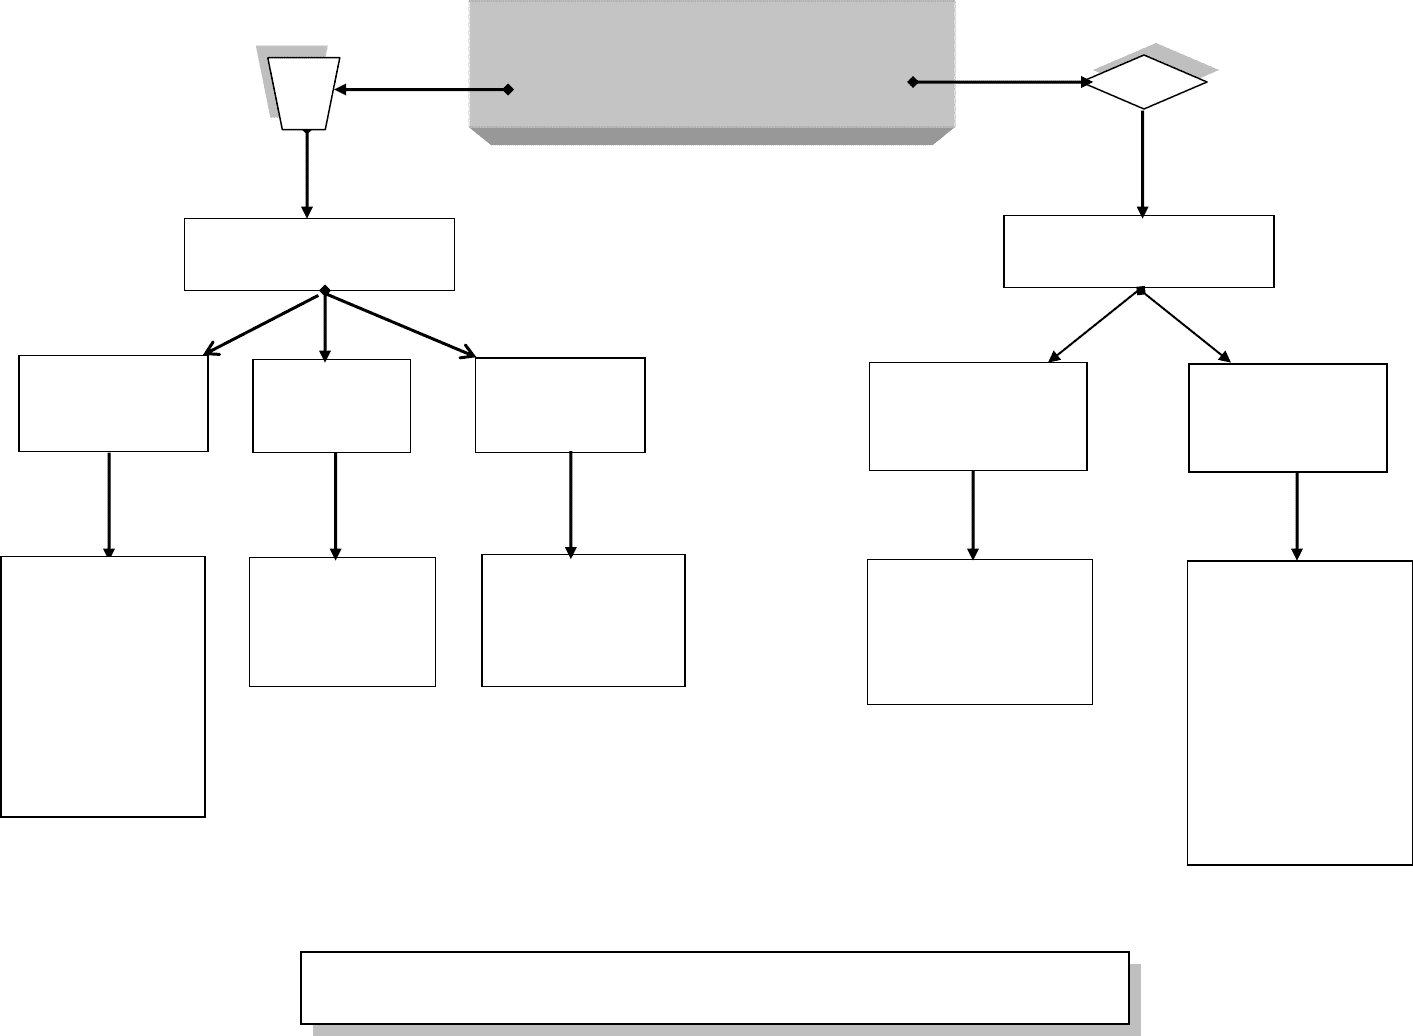 tree diagram microsoft word hitachi 24 volt alternator wiring decision flow chart in and pdf formats